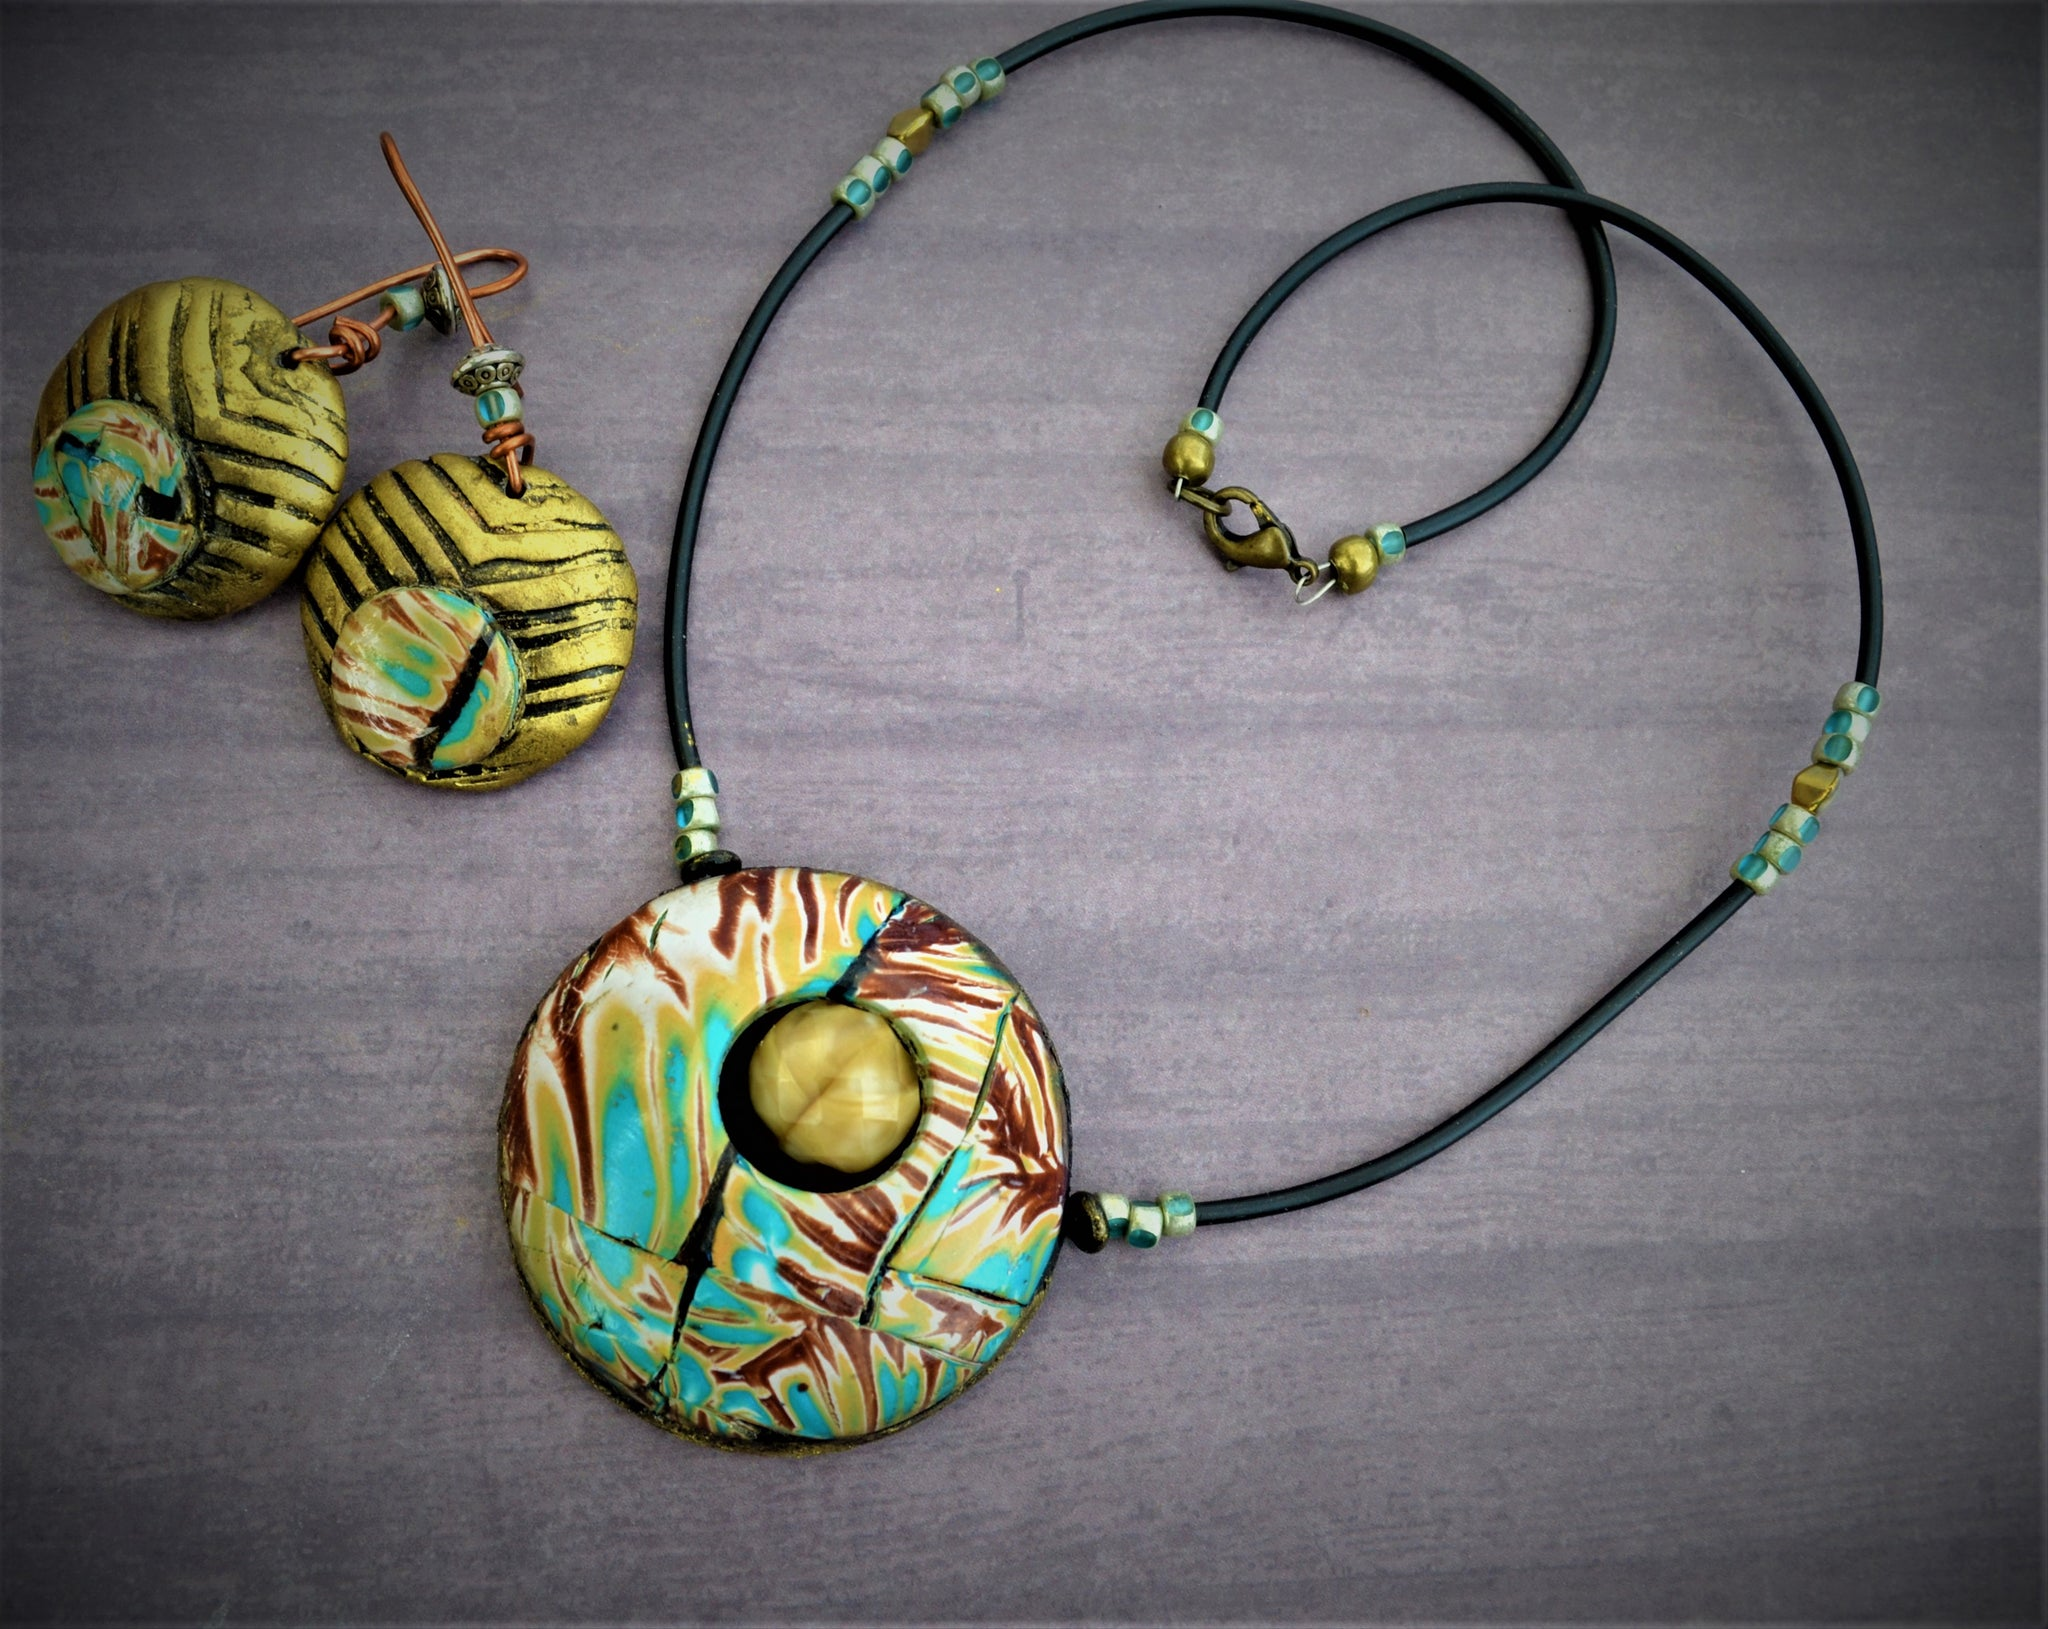 Hollow polymer clay bead necklace with earrings using Mokume Gane